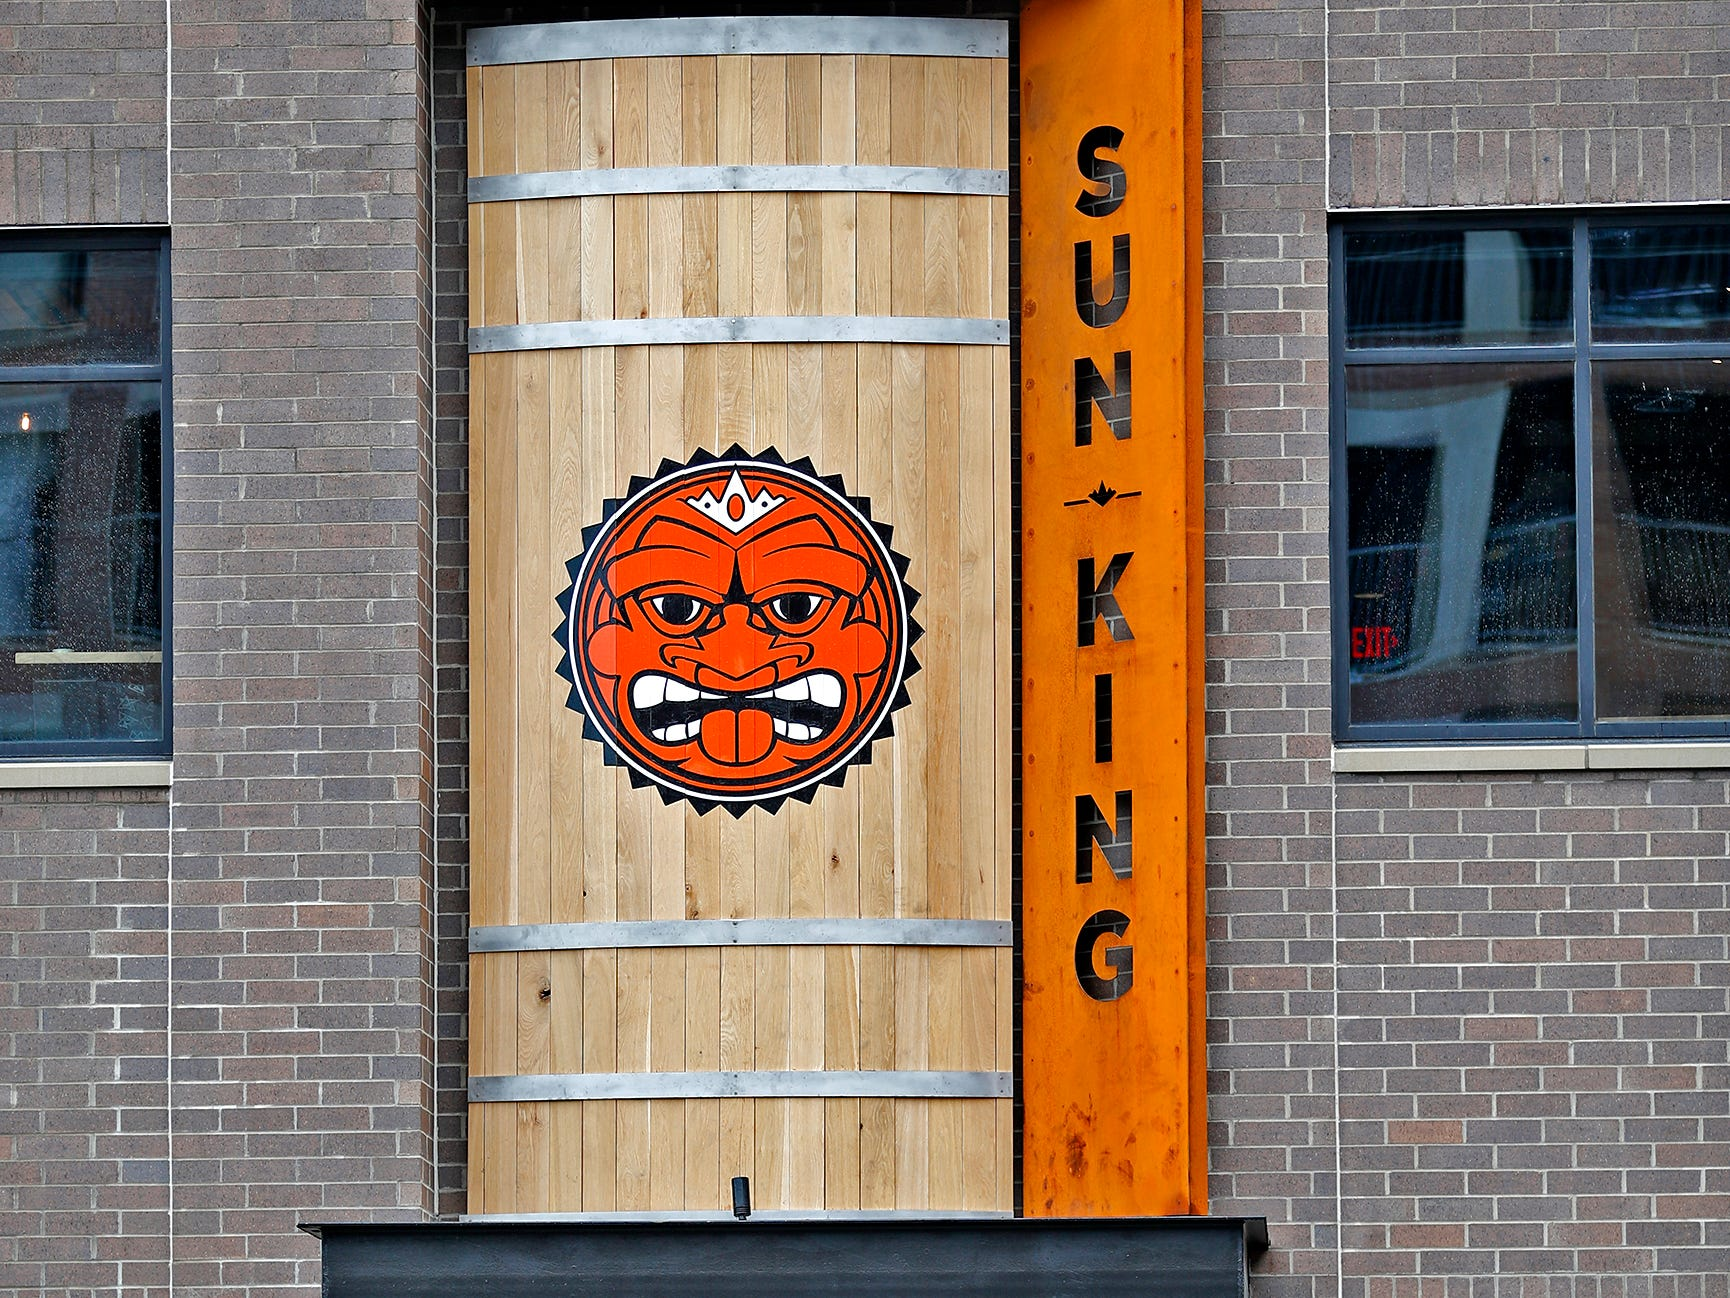 The Sun King Tap Room (351 Monon Trail) is seen in Midtown Carmel, Tuesday, Aug. 7, 2018.